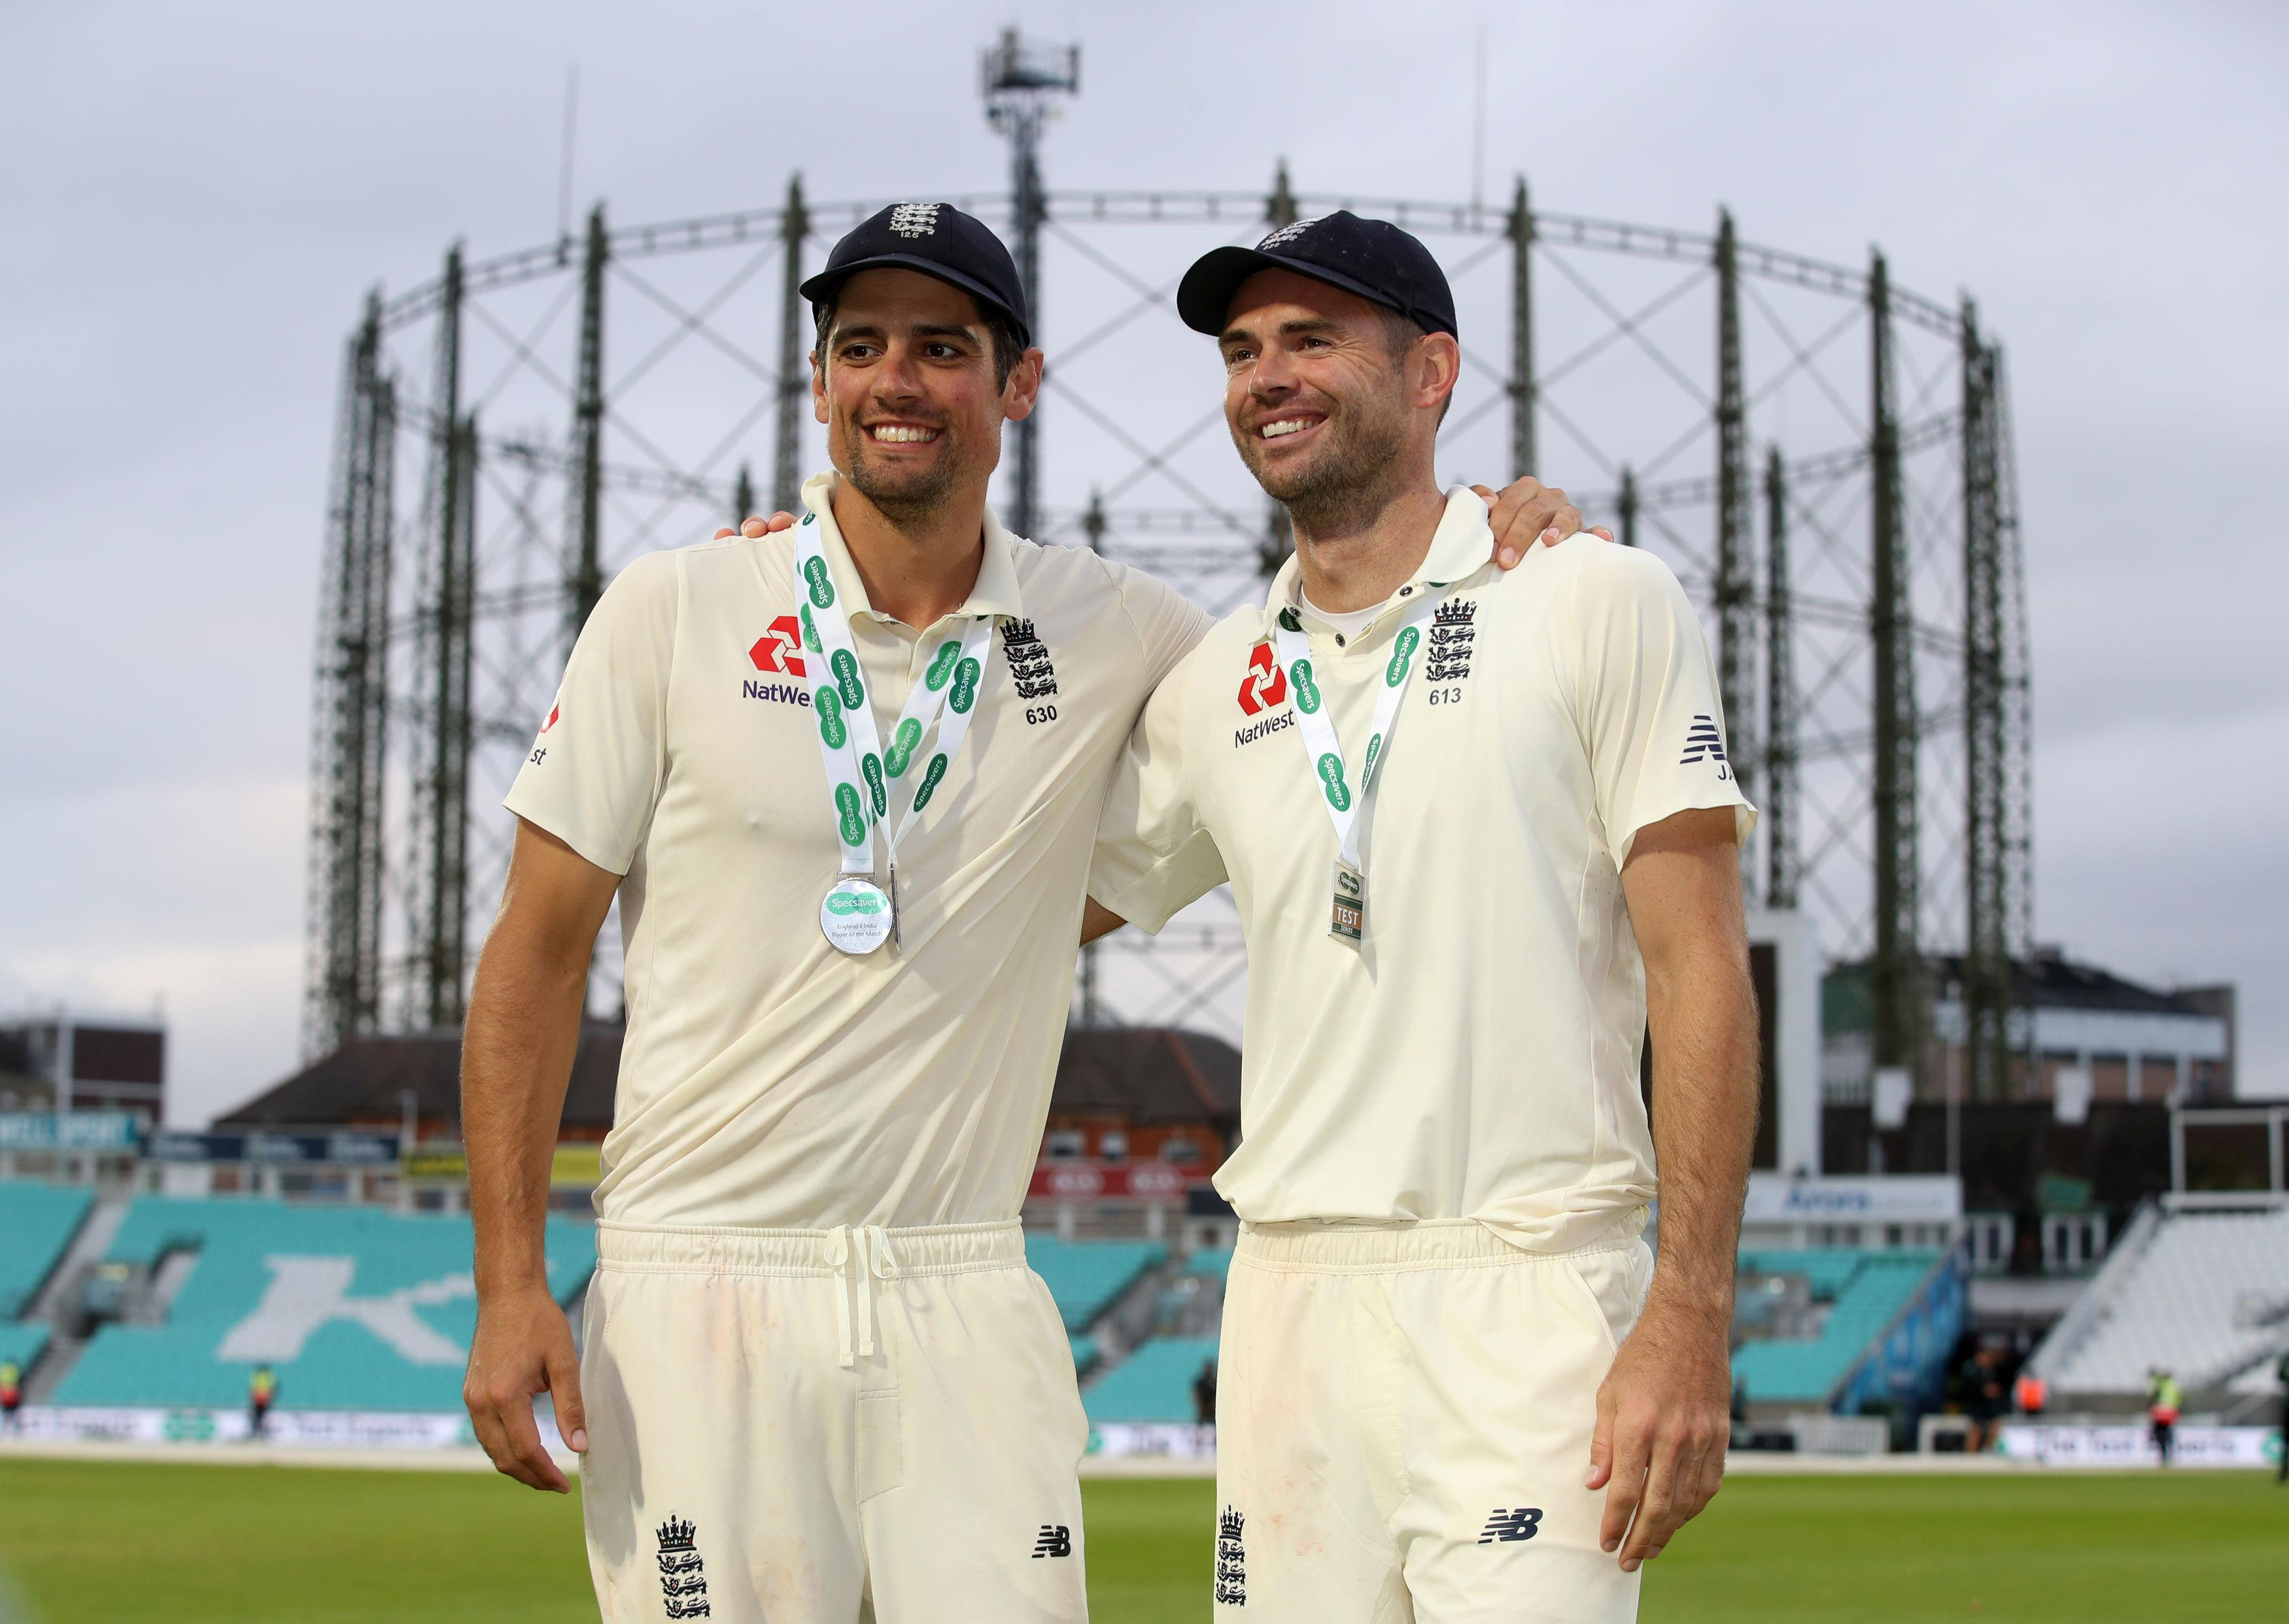 History-makers Alastair Cook and James Anderson reflect on their achievements after England wrapped up a 4-1 series victory over India at The Oval